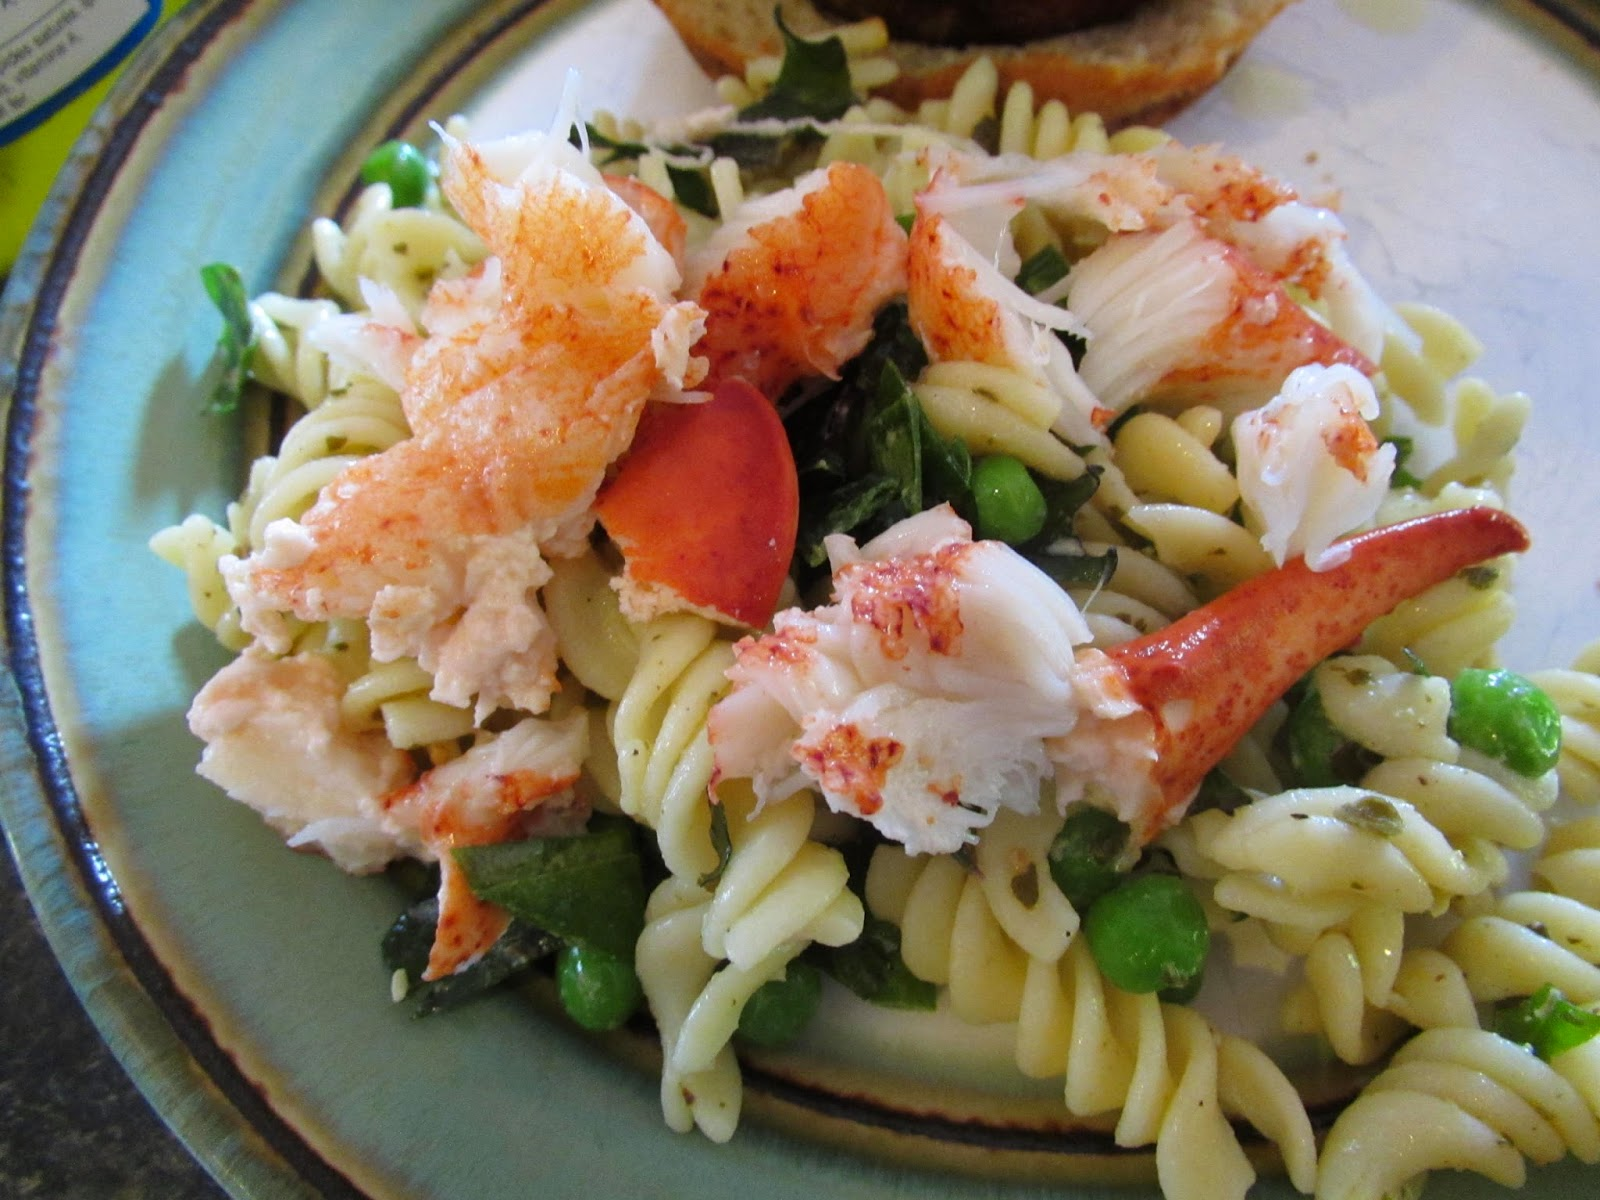 successfully gluten free pesto pasta salad w lobster